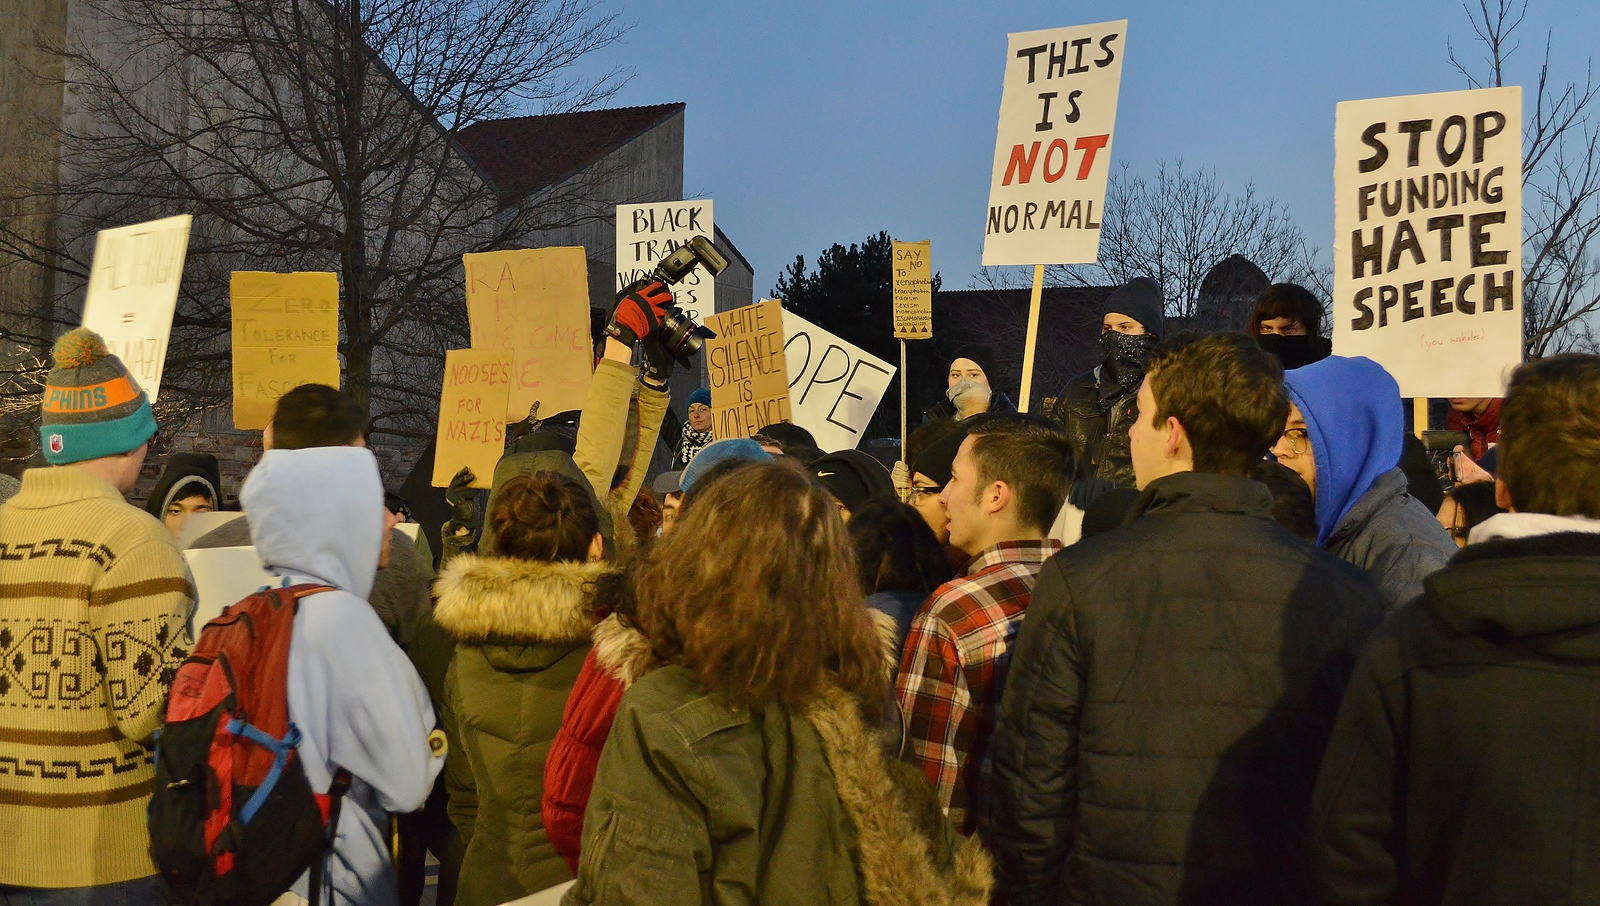 Protesters with signs at speech by Milo Yiannopoulos at Univ of Colorado in Boulder.